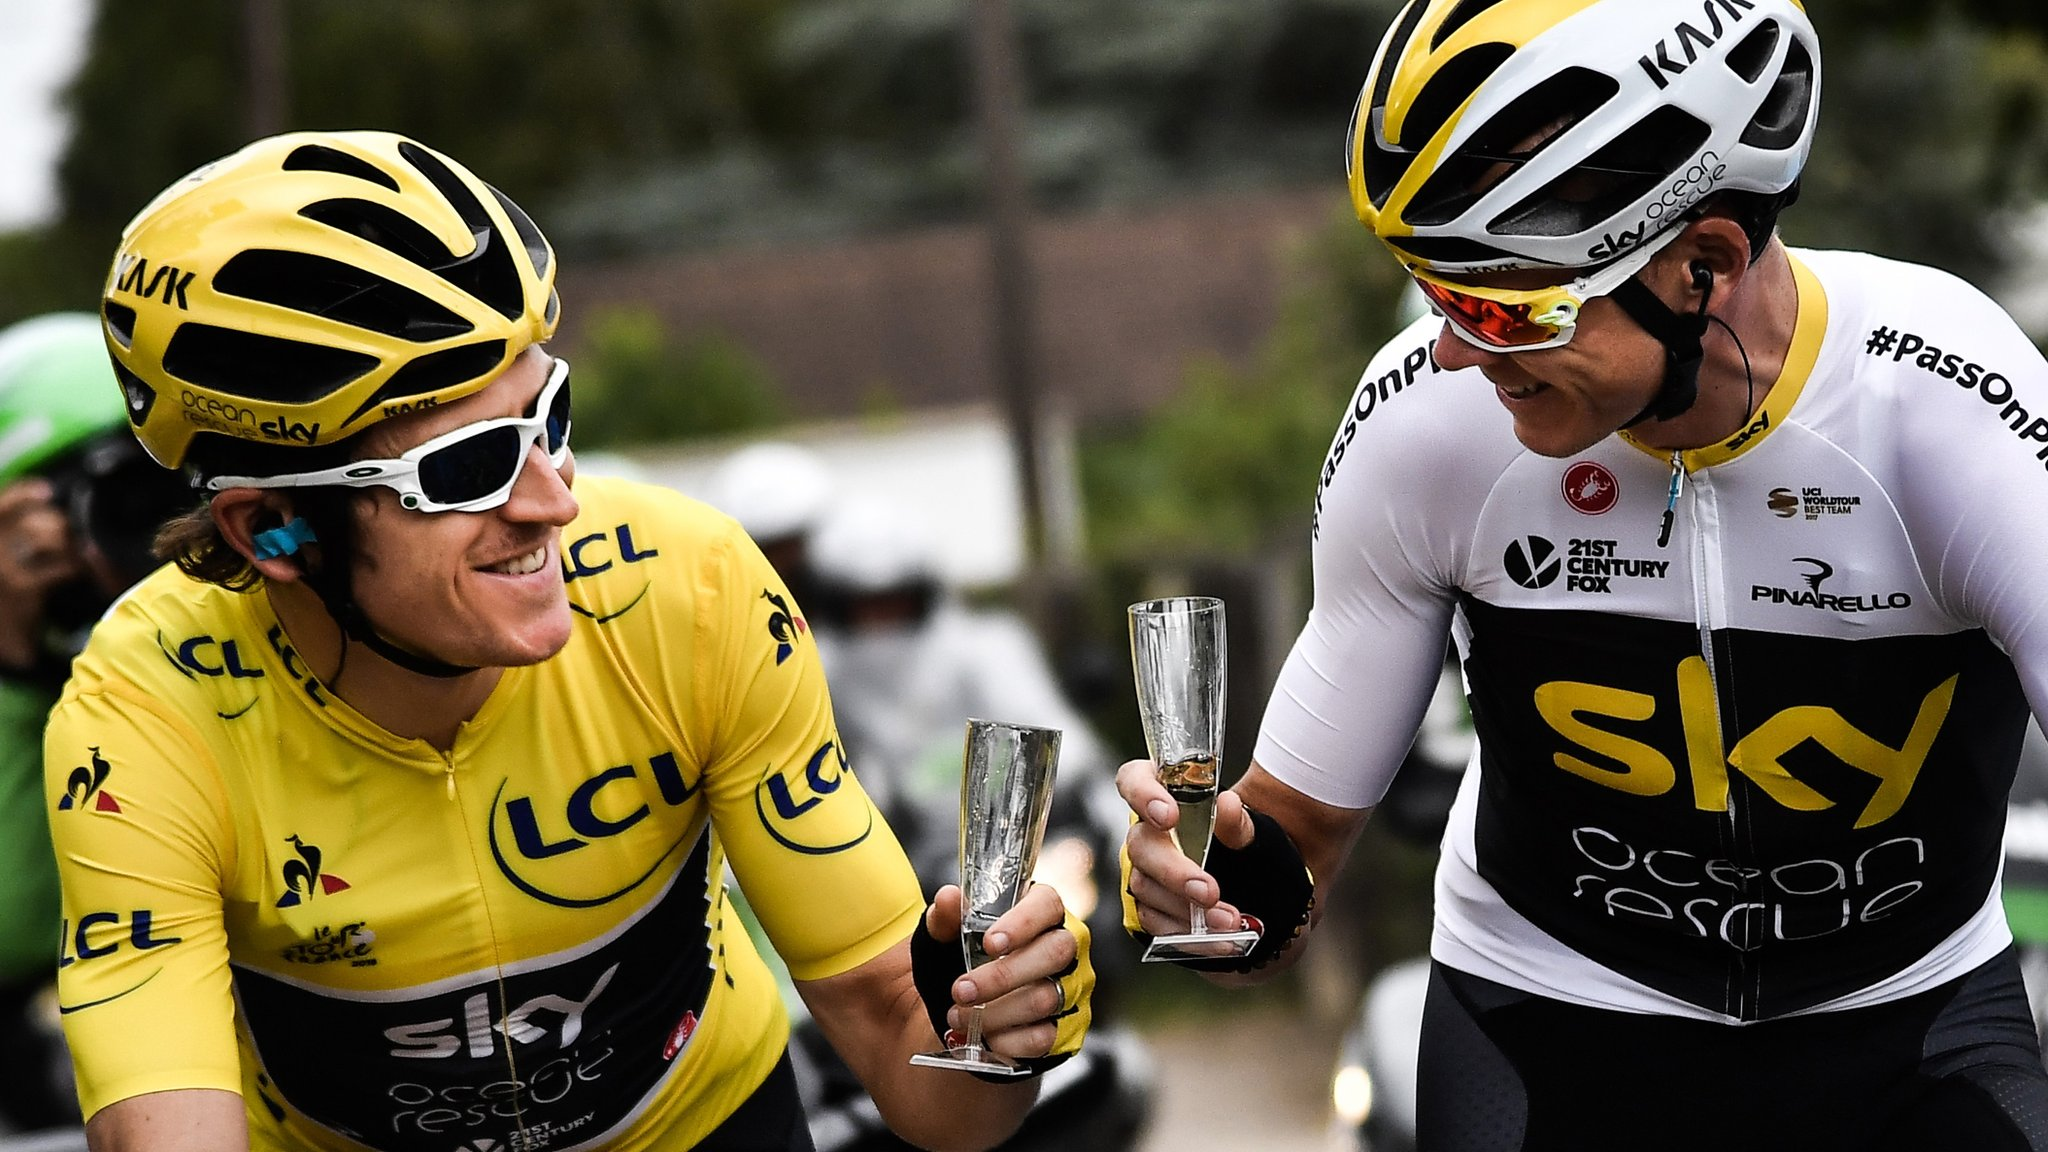 Team Sky: Sky to end backing of British powerhouse in 2019